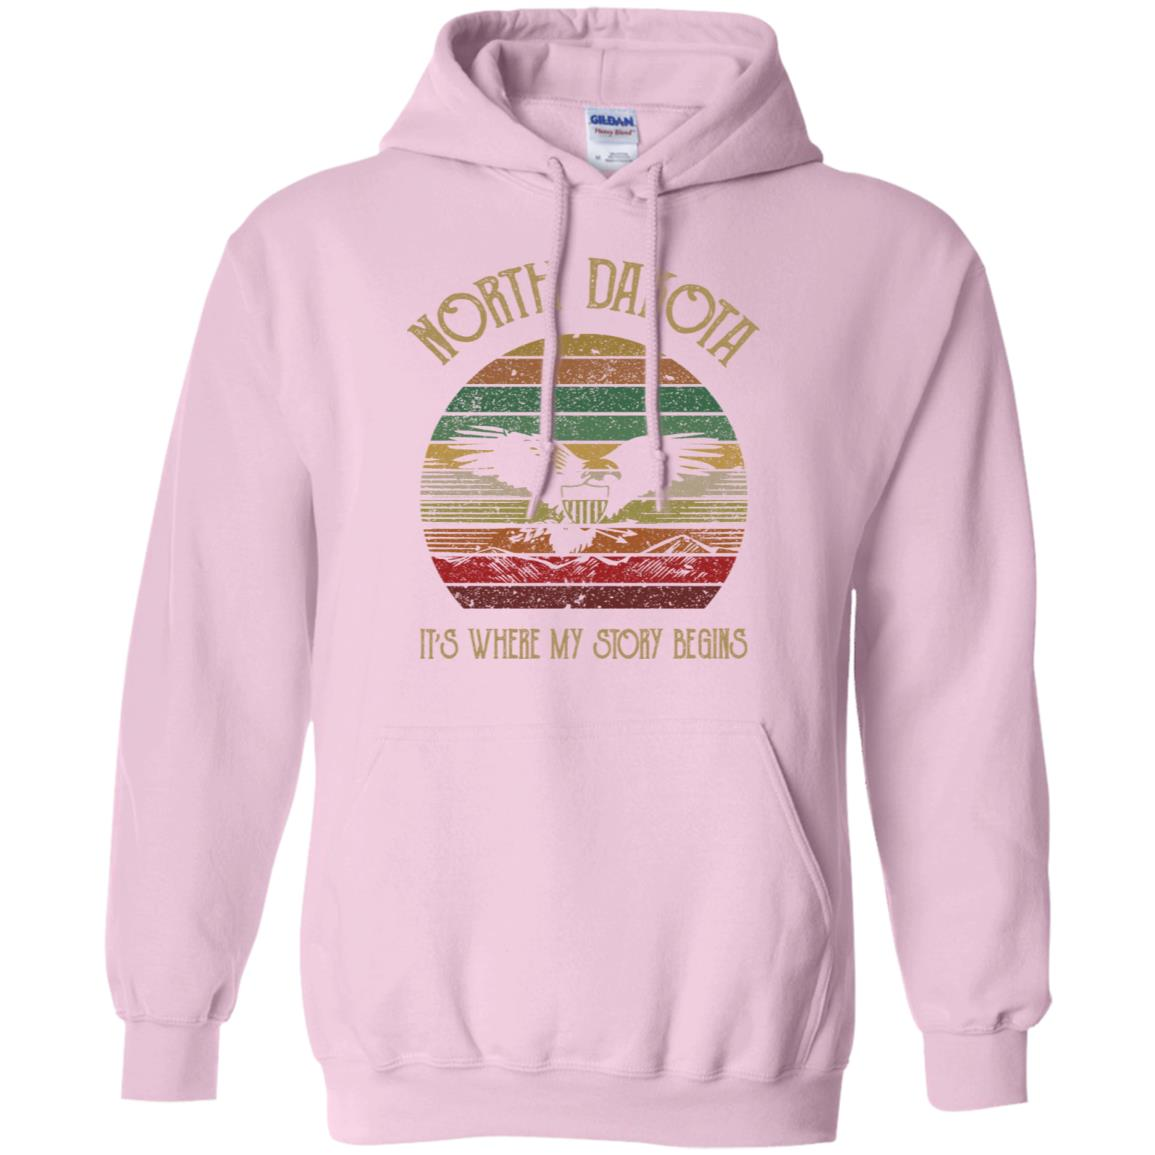 North Dakota Where My Story Begins Hoodie